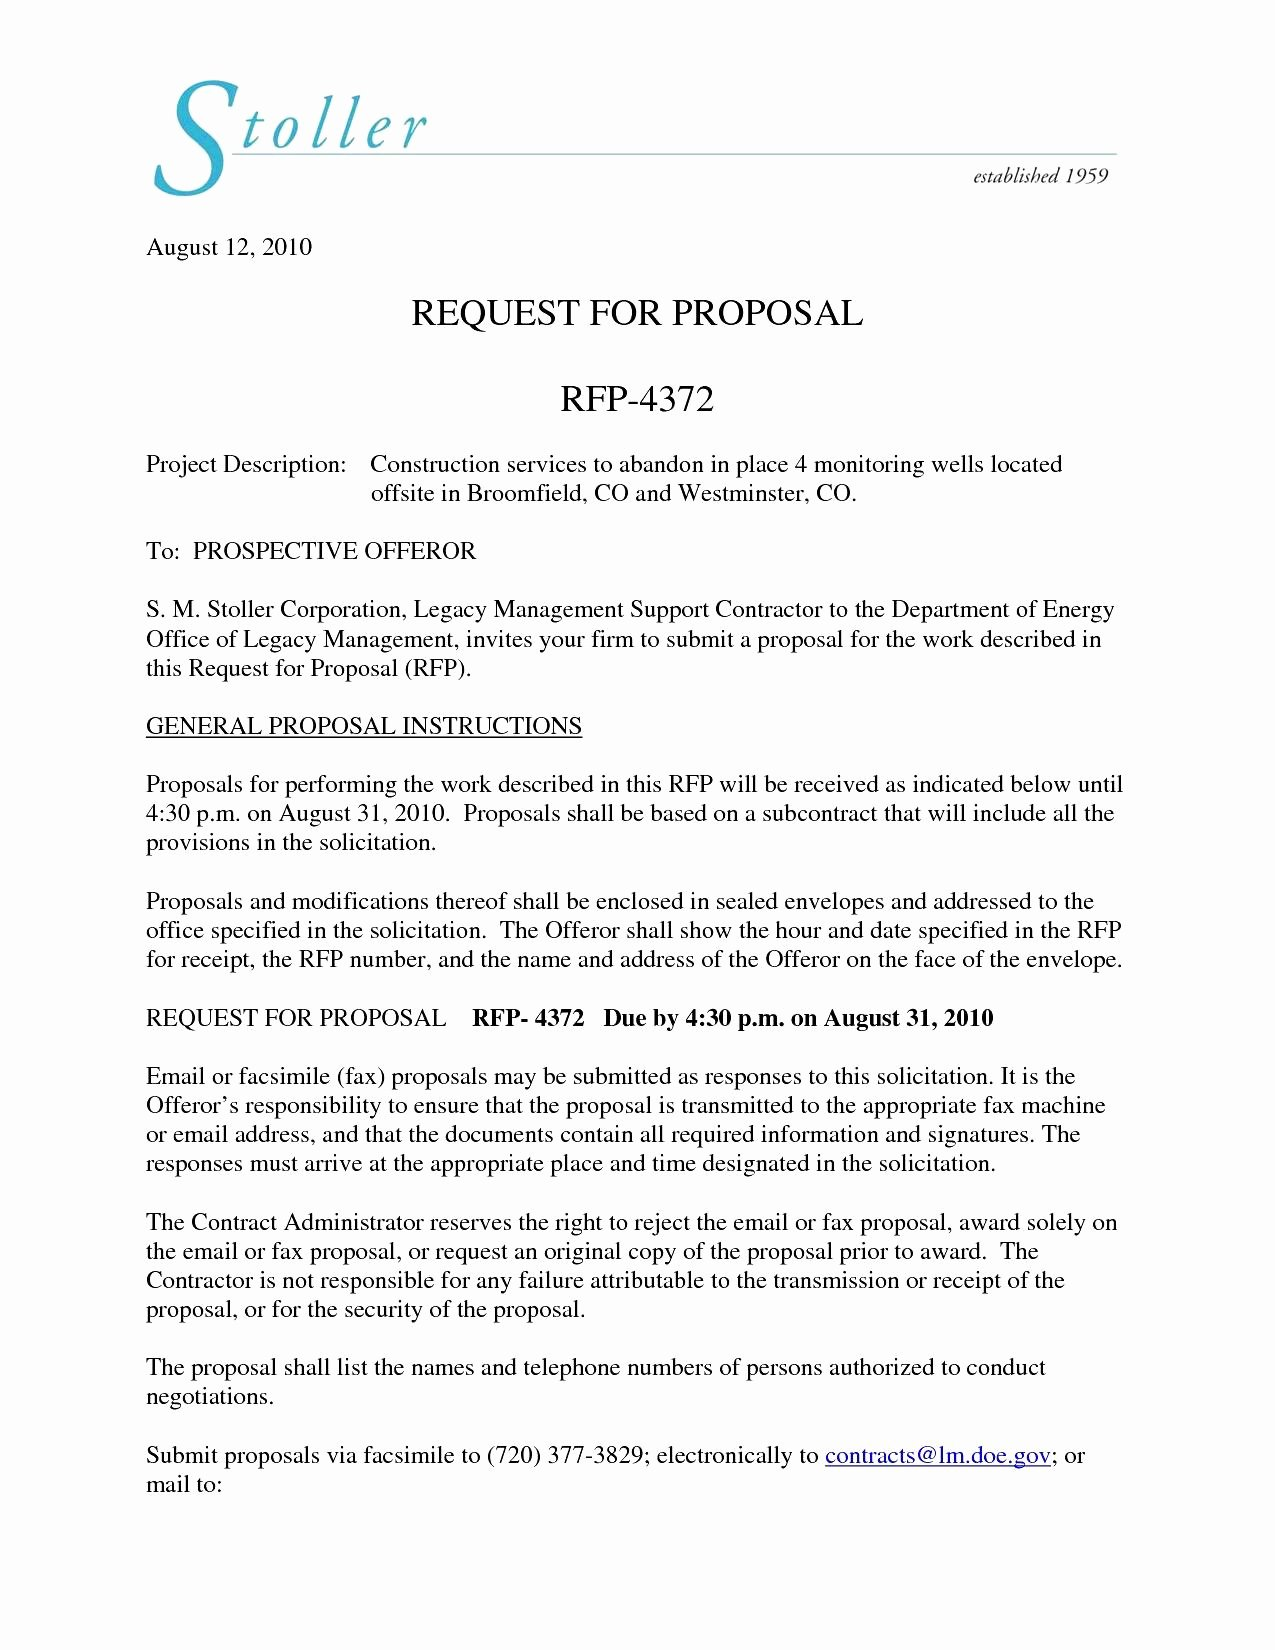 Response to Rfp Template Beautiful 14 15 Cover Letter for Rfp Response